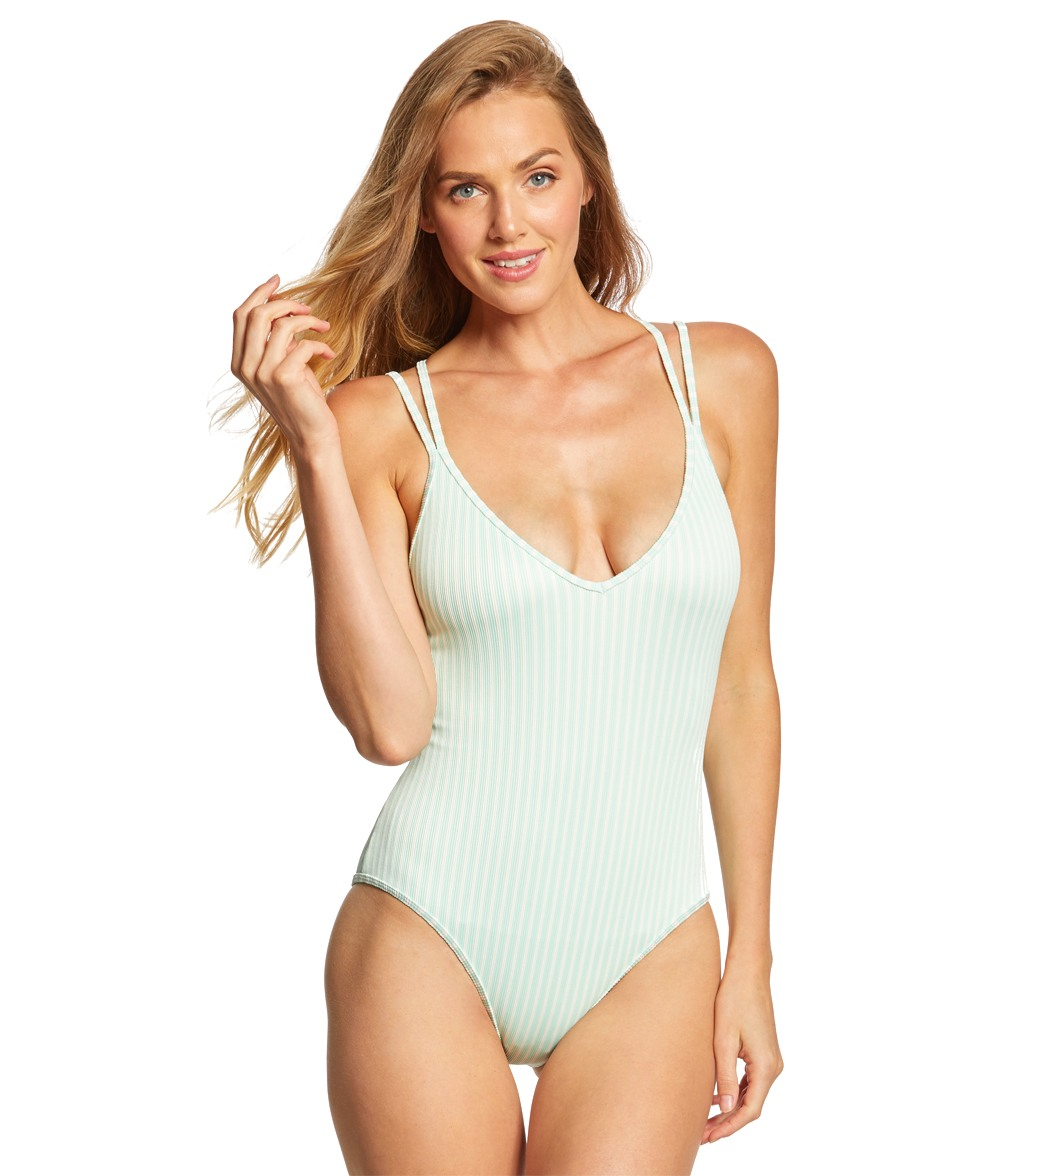 L-Space Ridin  High Breed Dakota One Piece Swimsuit at SwimOutlet.com -  Free Shipping 7ebe9d17c